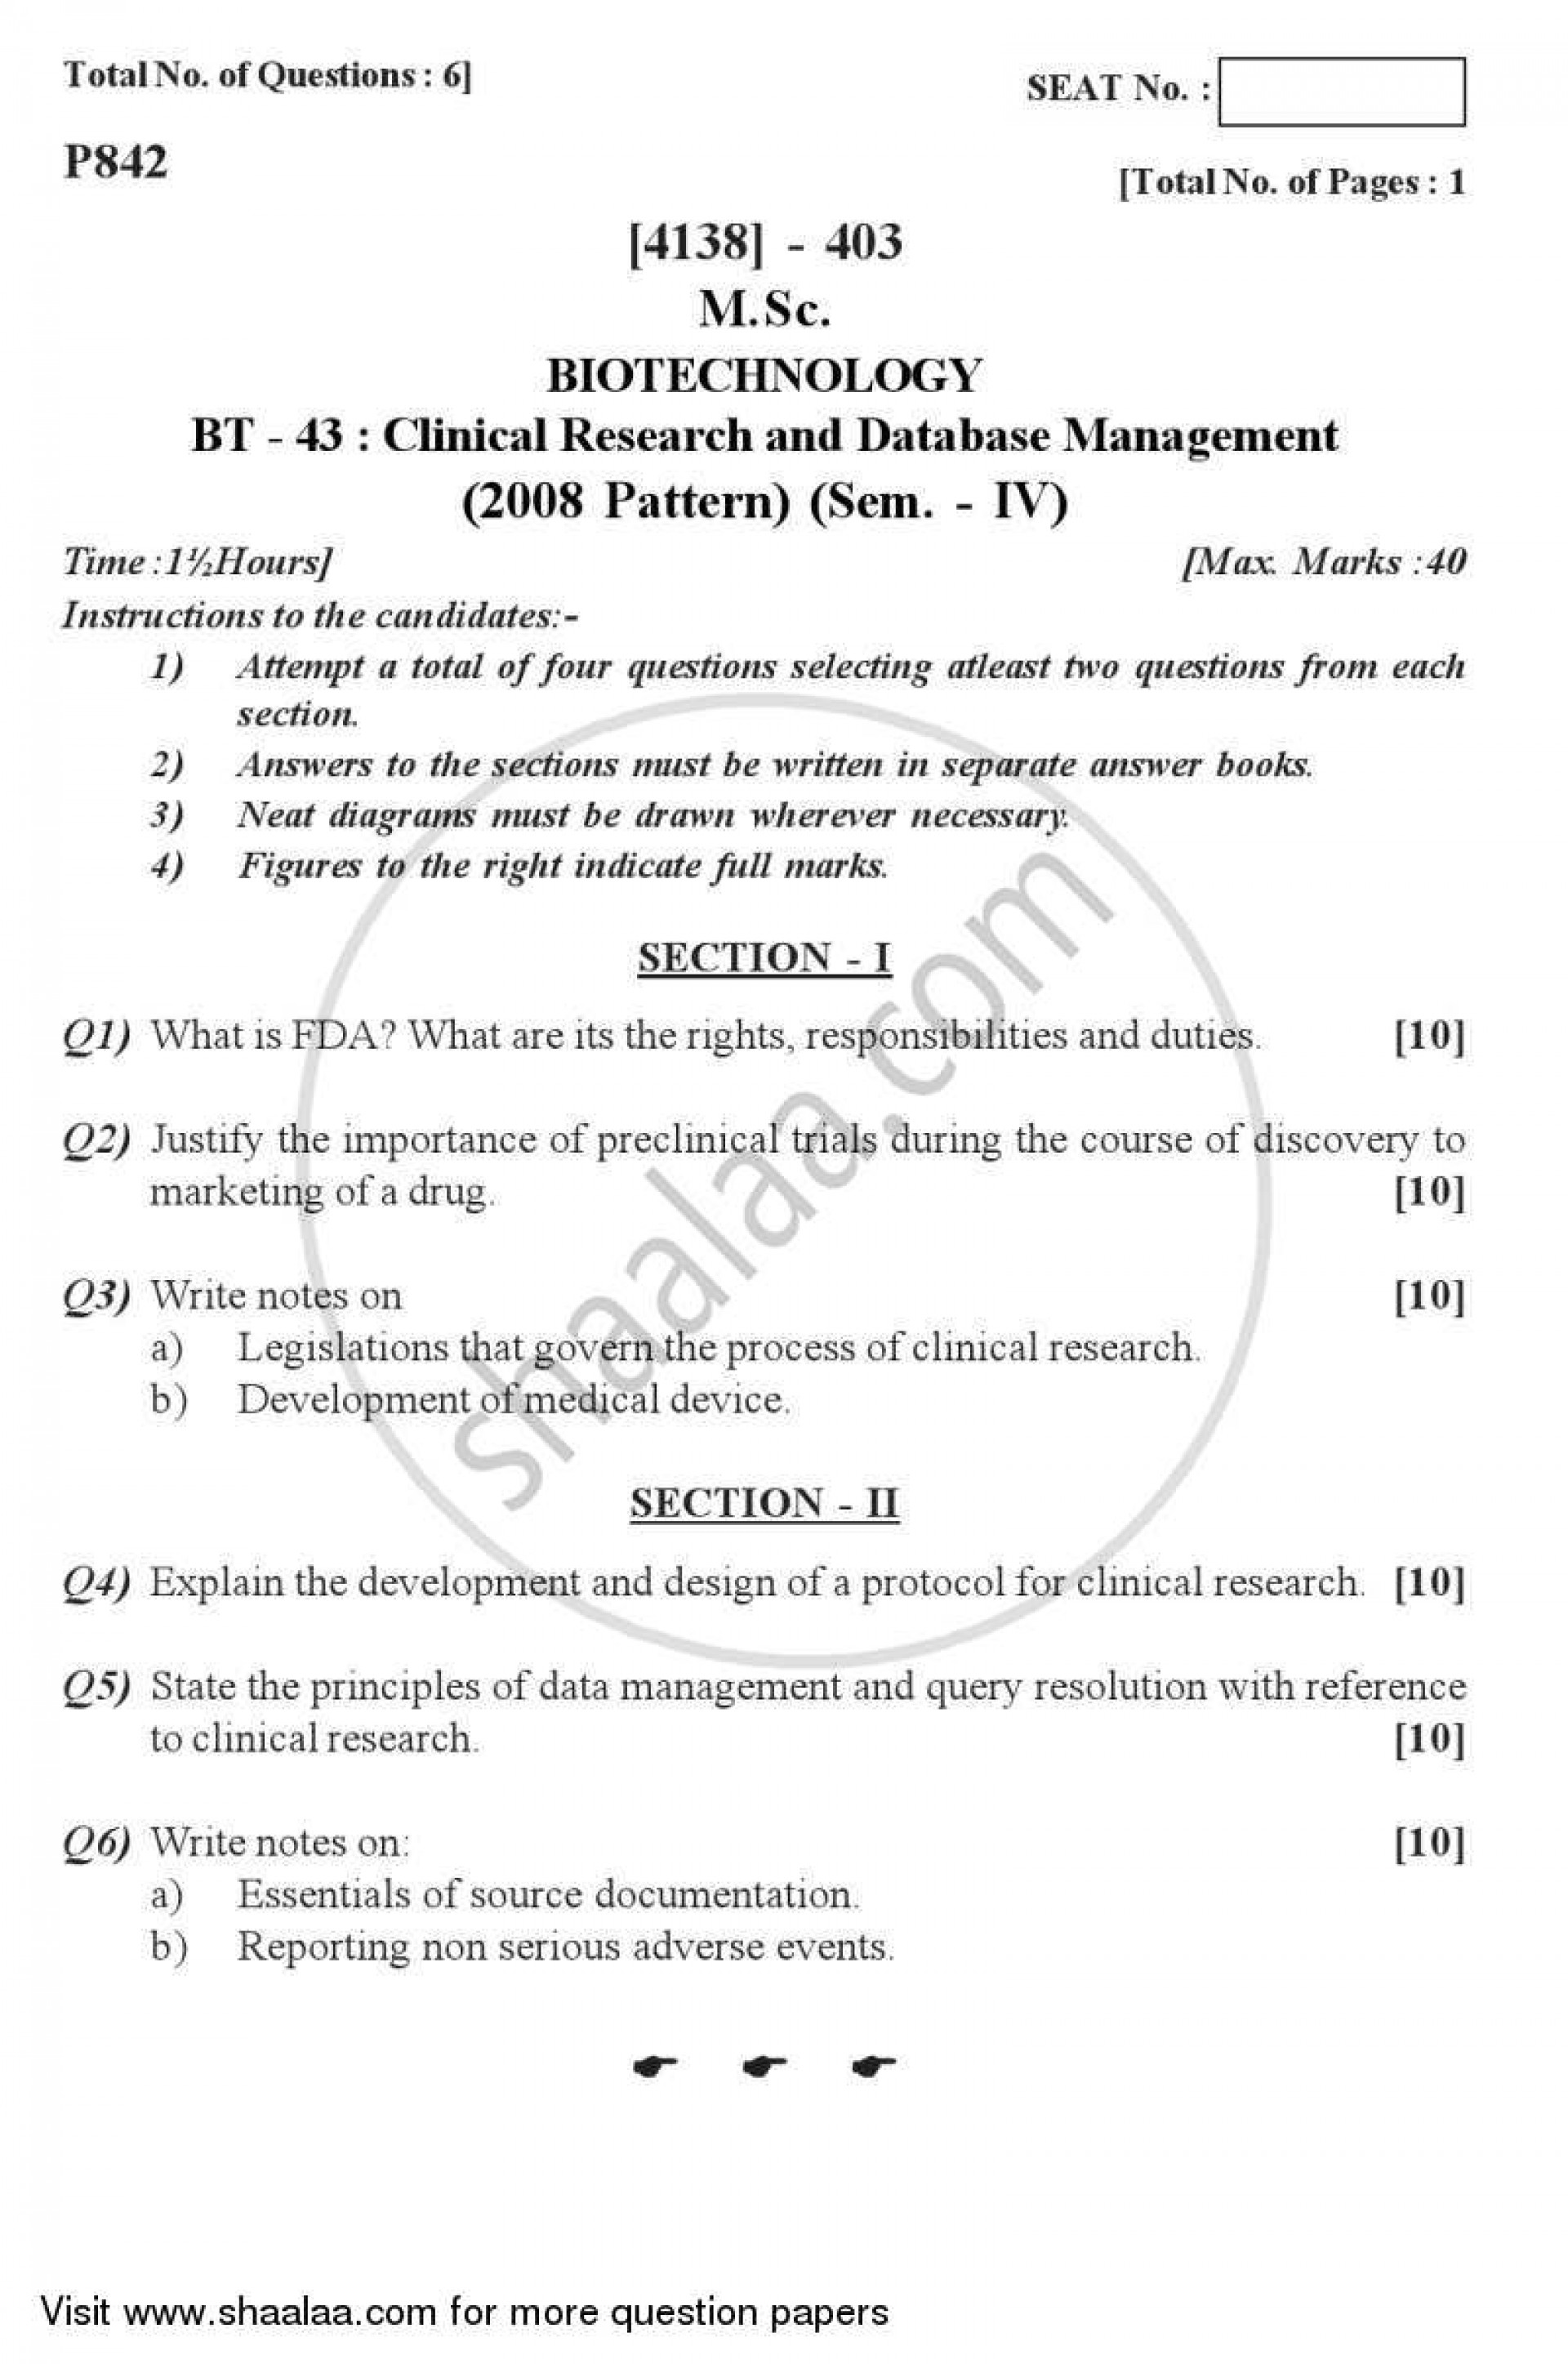 023 Research Paper Database University Of Pune Master Msc Clinical Management Biotech Semester 2012 25b9c0e3f87cb432992c22355b1608732 Sensational Academic Article On Security Pdf Ieee 1920